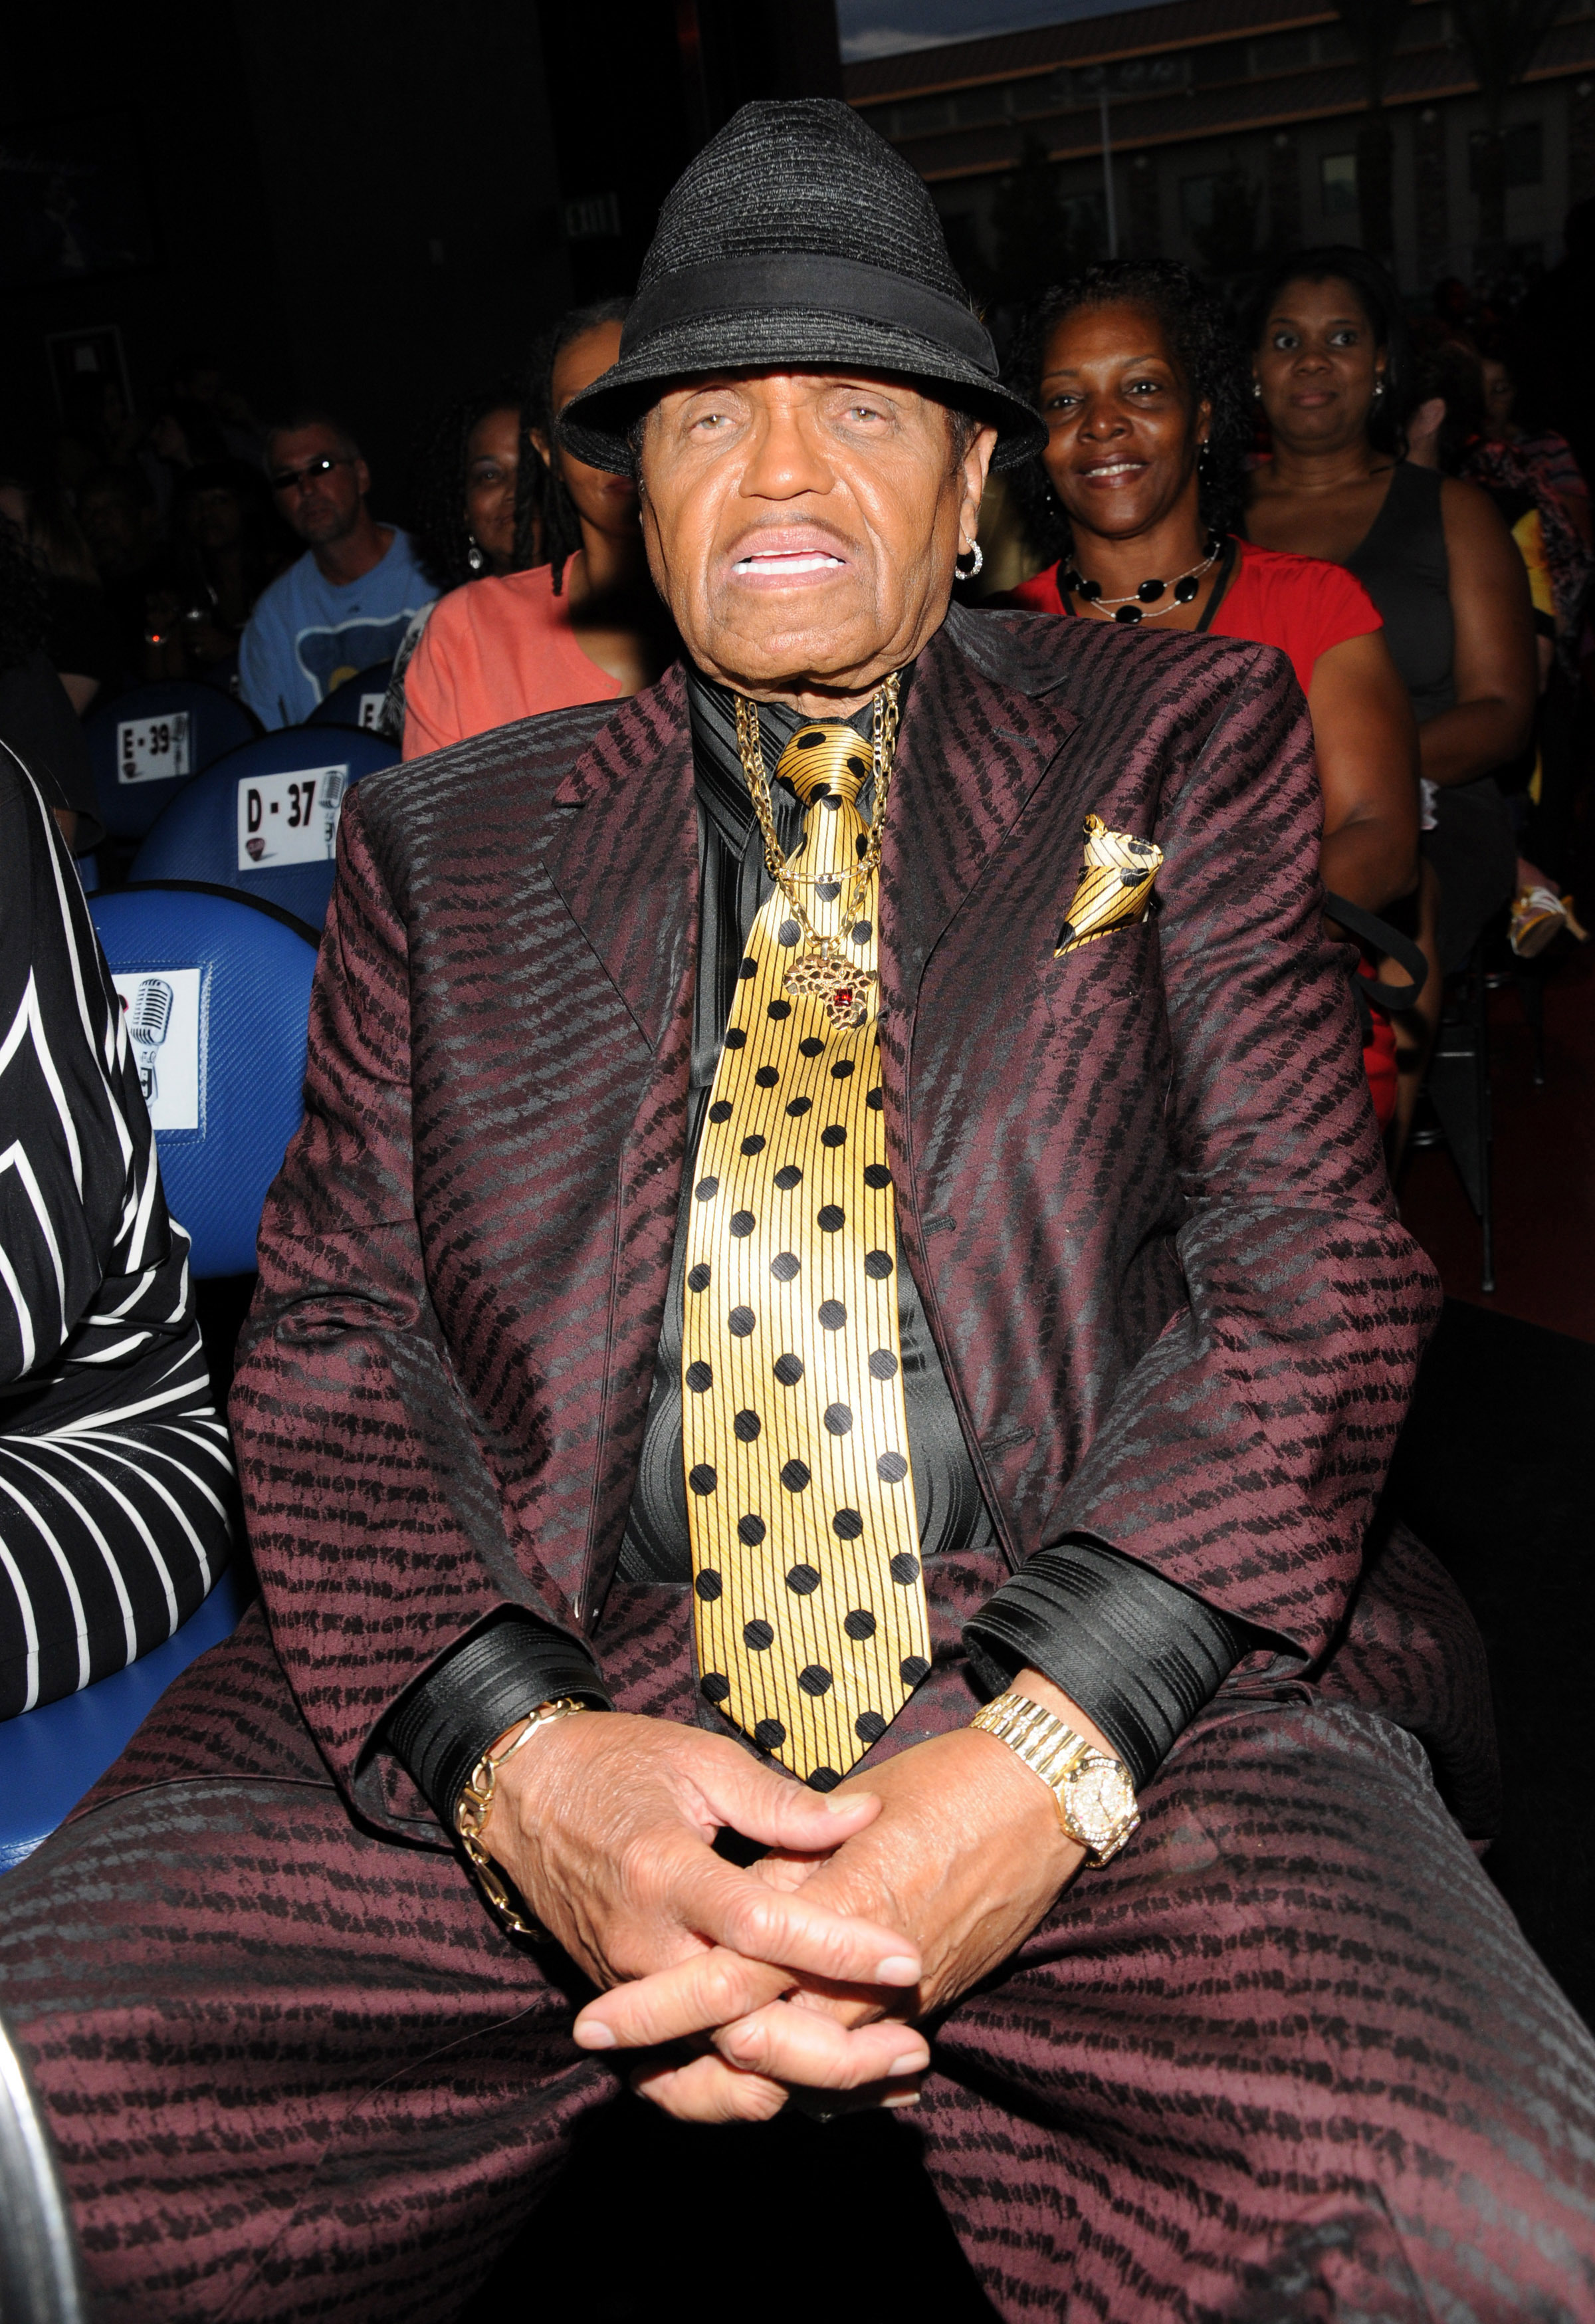 Joe Jackson hospitalized with fever: Report